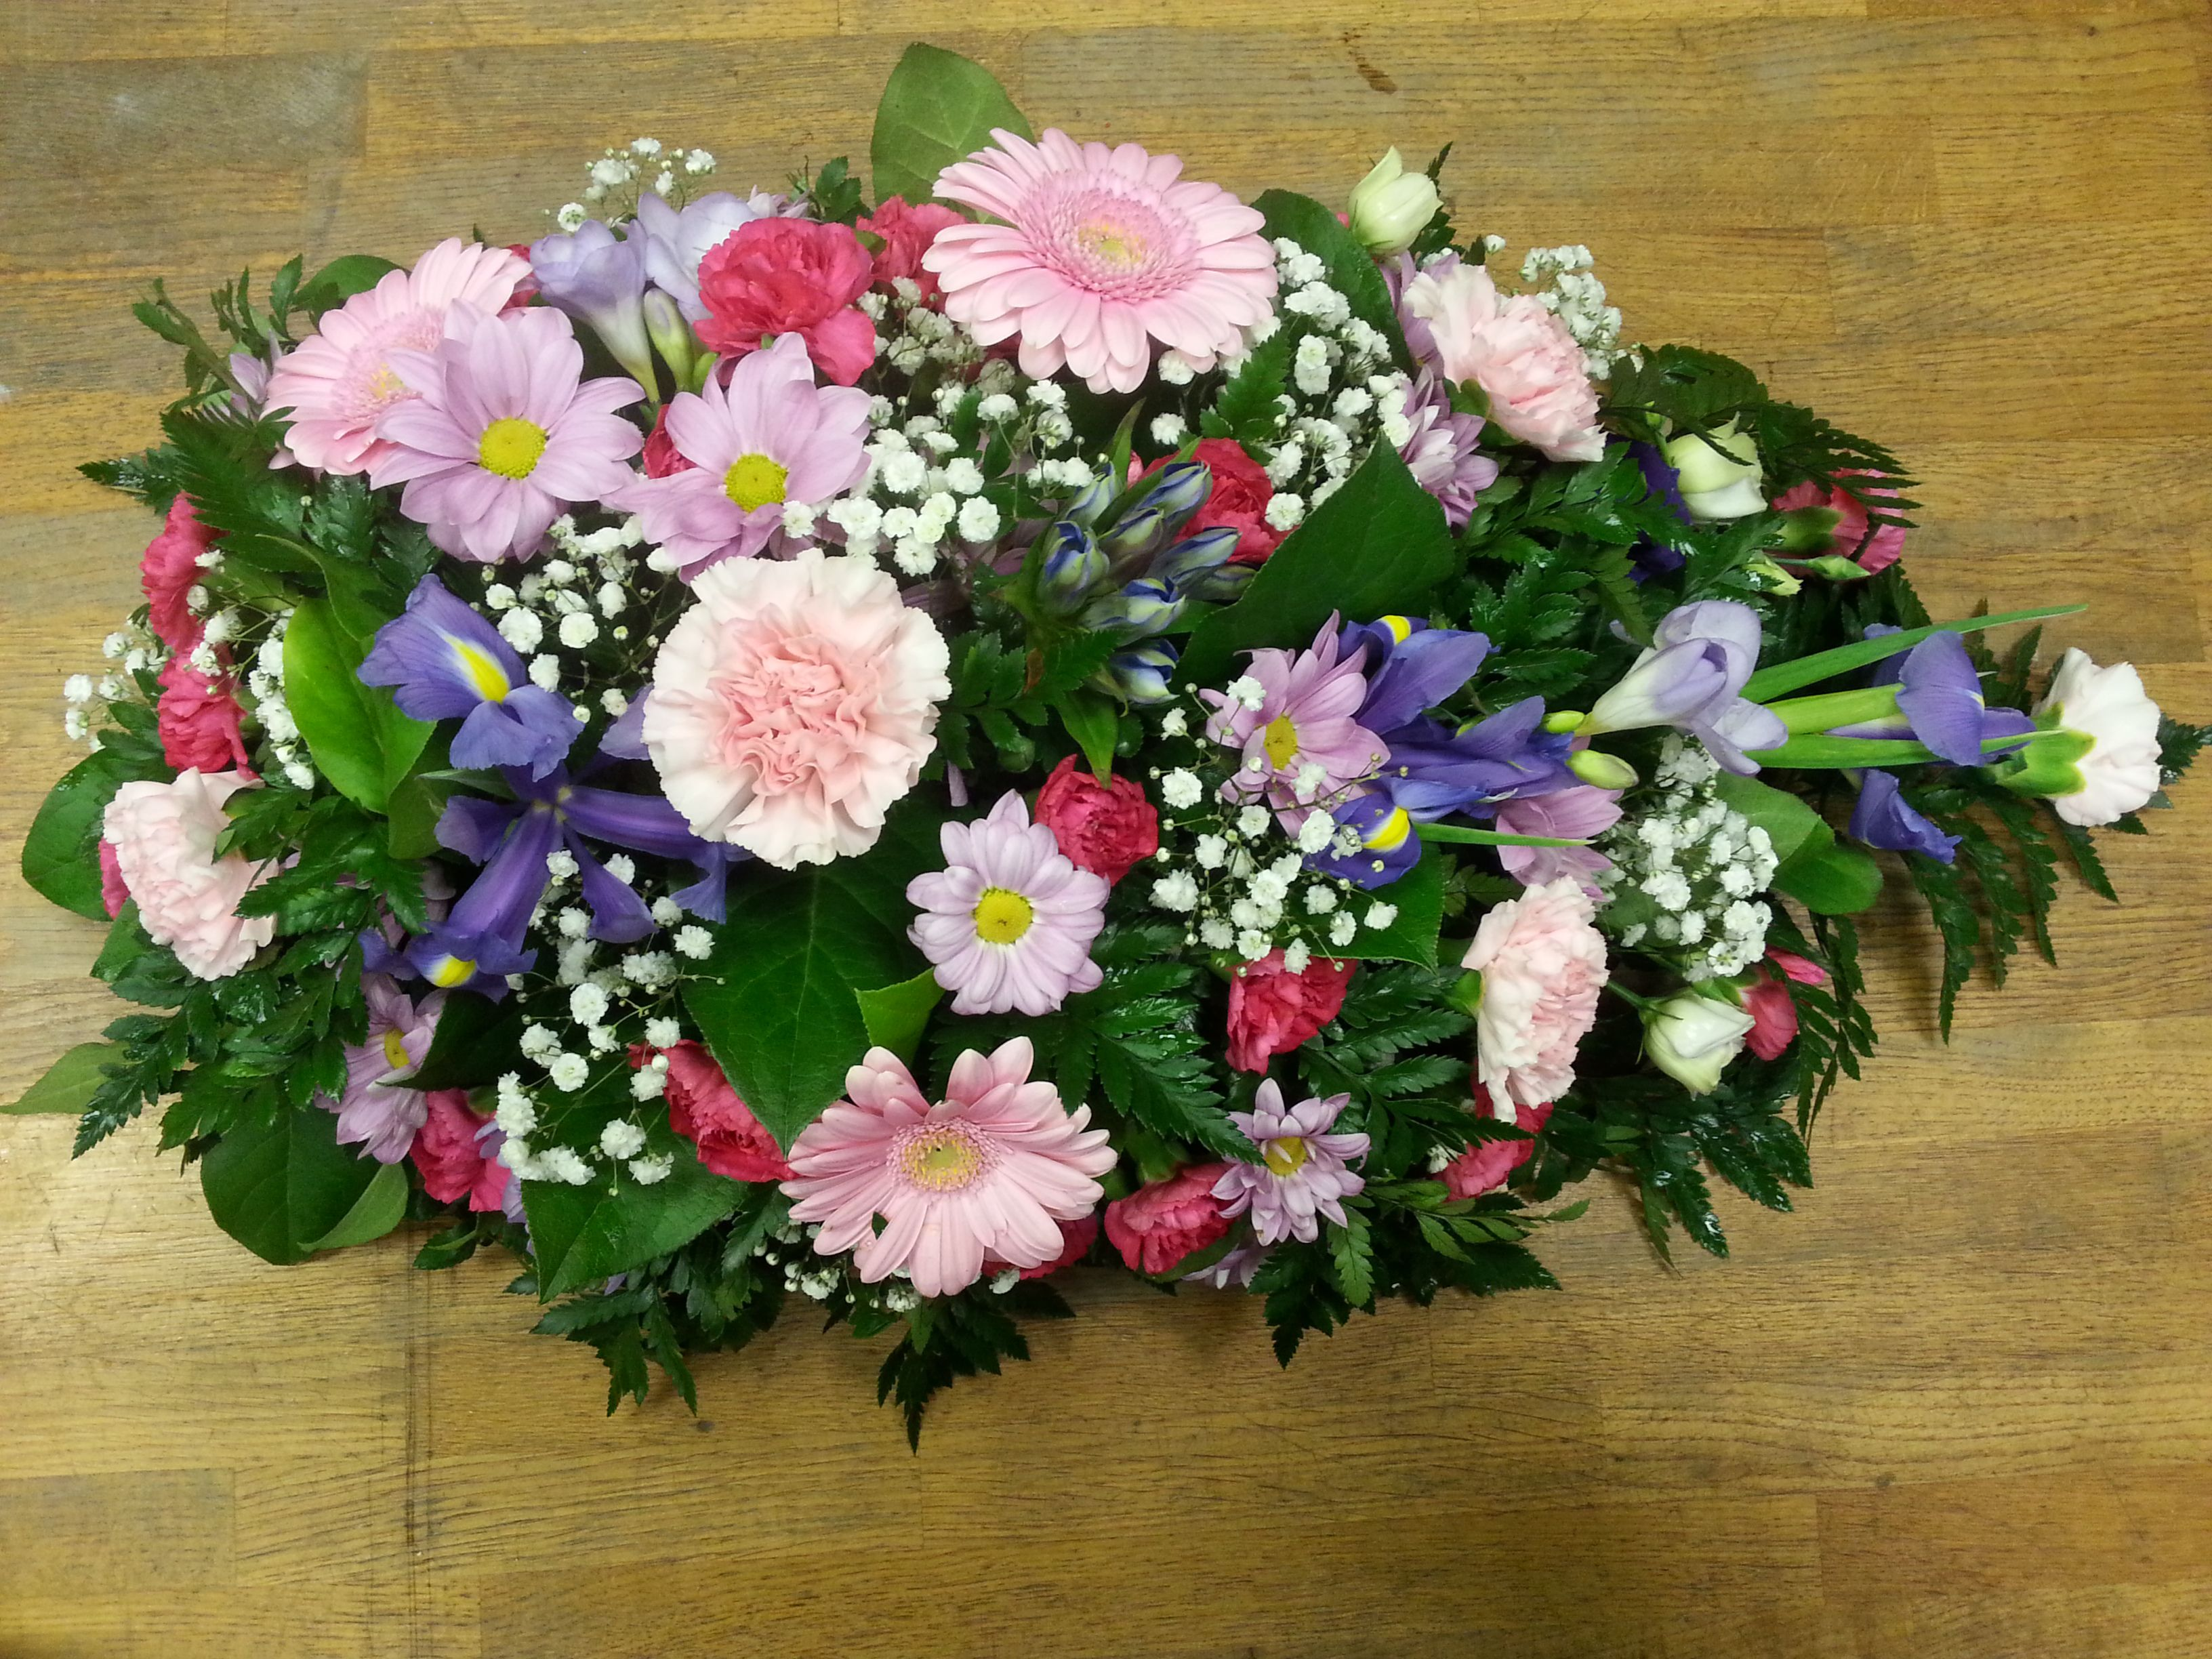 Pretty pink tribute in a teardrop shape as experts in funeral need help selecting flowers for funeral funeral tributes are the perfect way to express emotions order funeral flowers online with us today izmirmasajfo